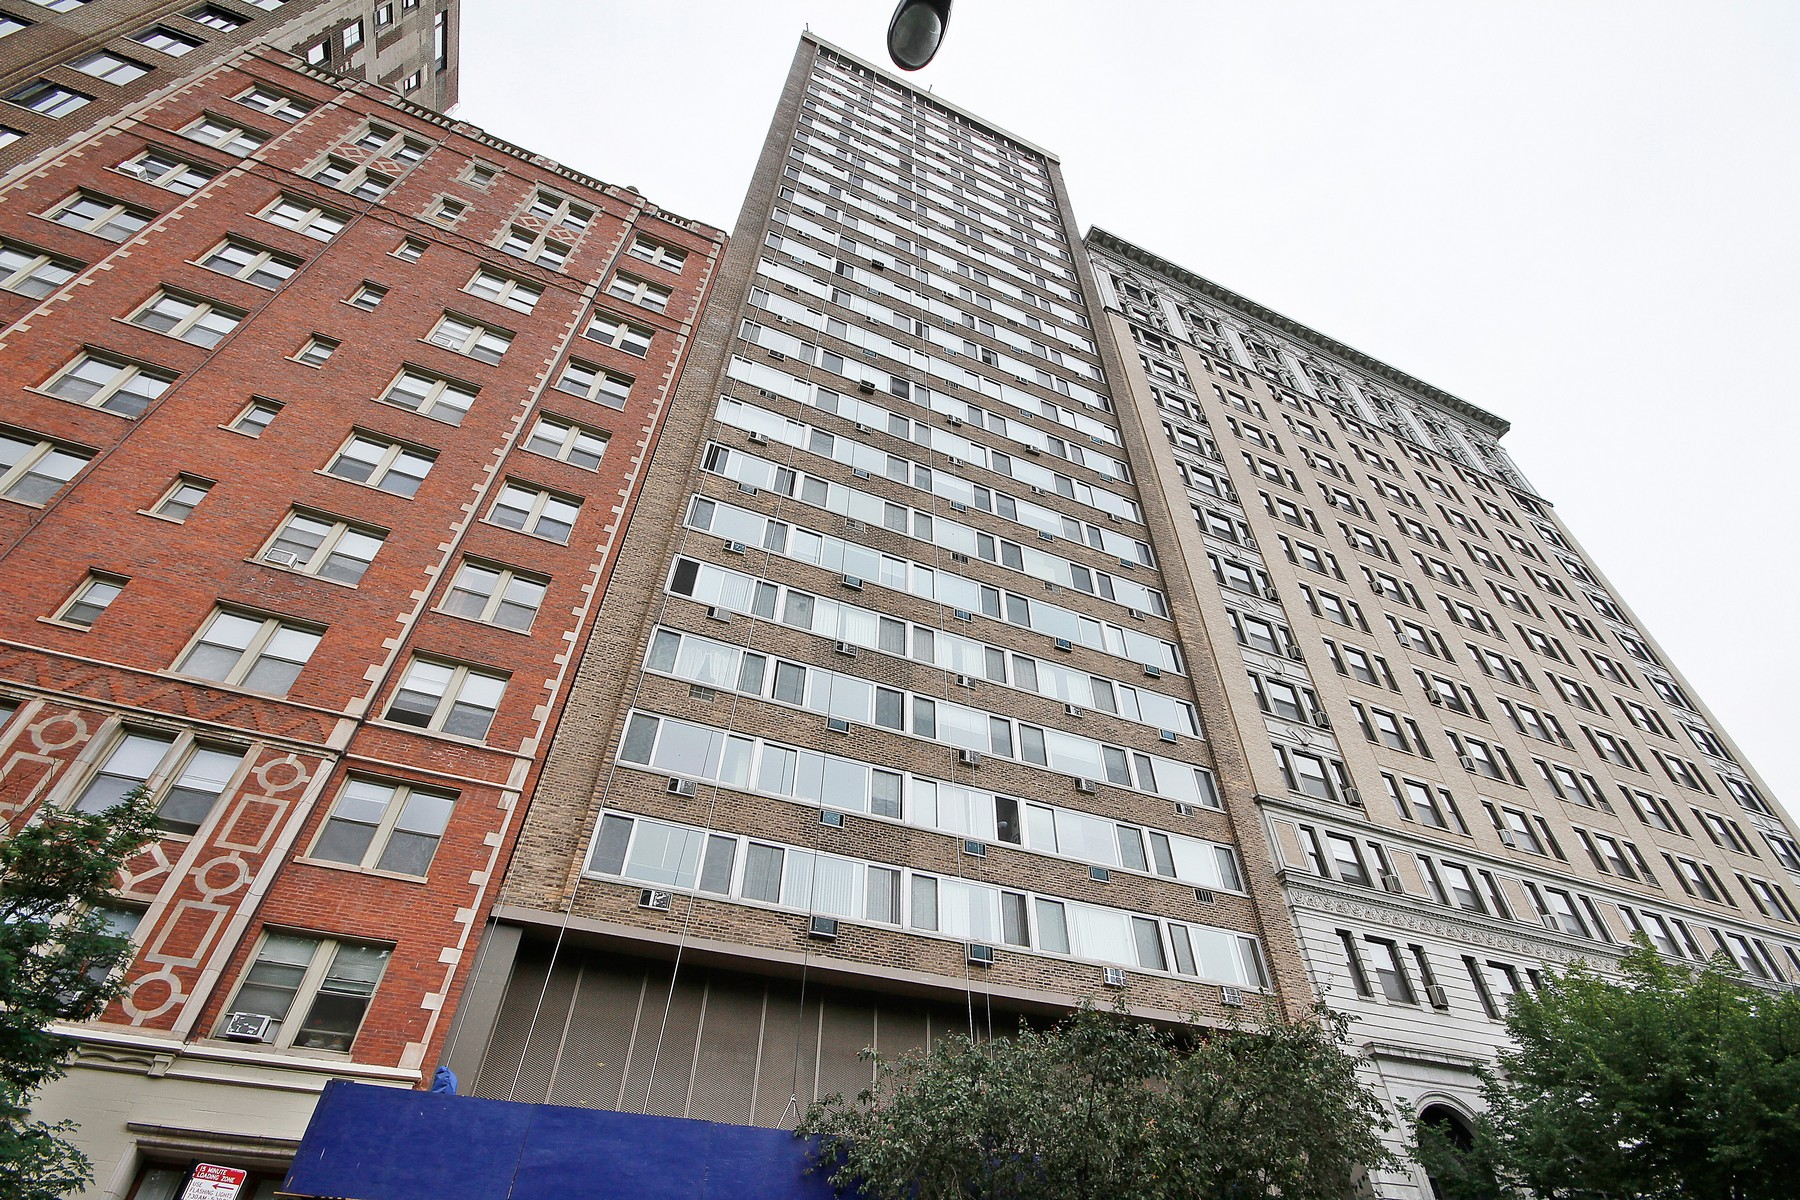 Condominio por un Venta en Large Condo Overlooking Lincoln Park 2144 N Lincoln Park West Unit 7A Lincoln Park, Chicago, Illinois, 60614 Estados Unidos